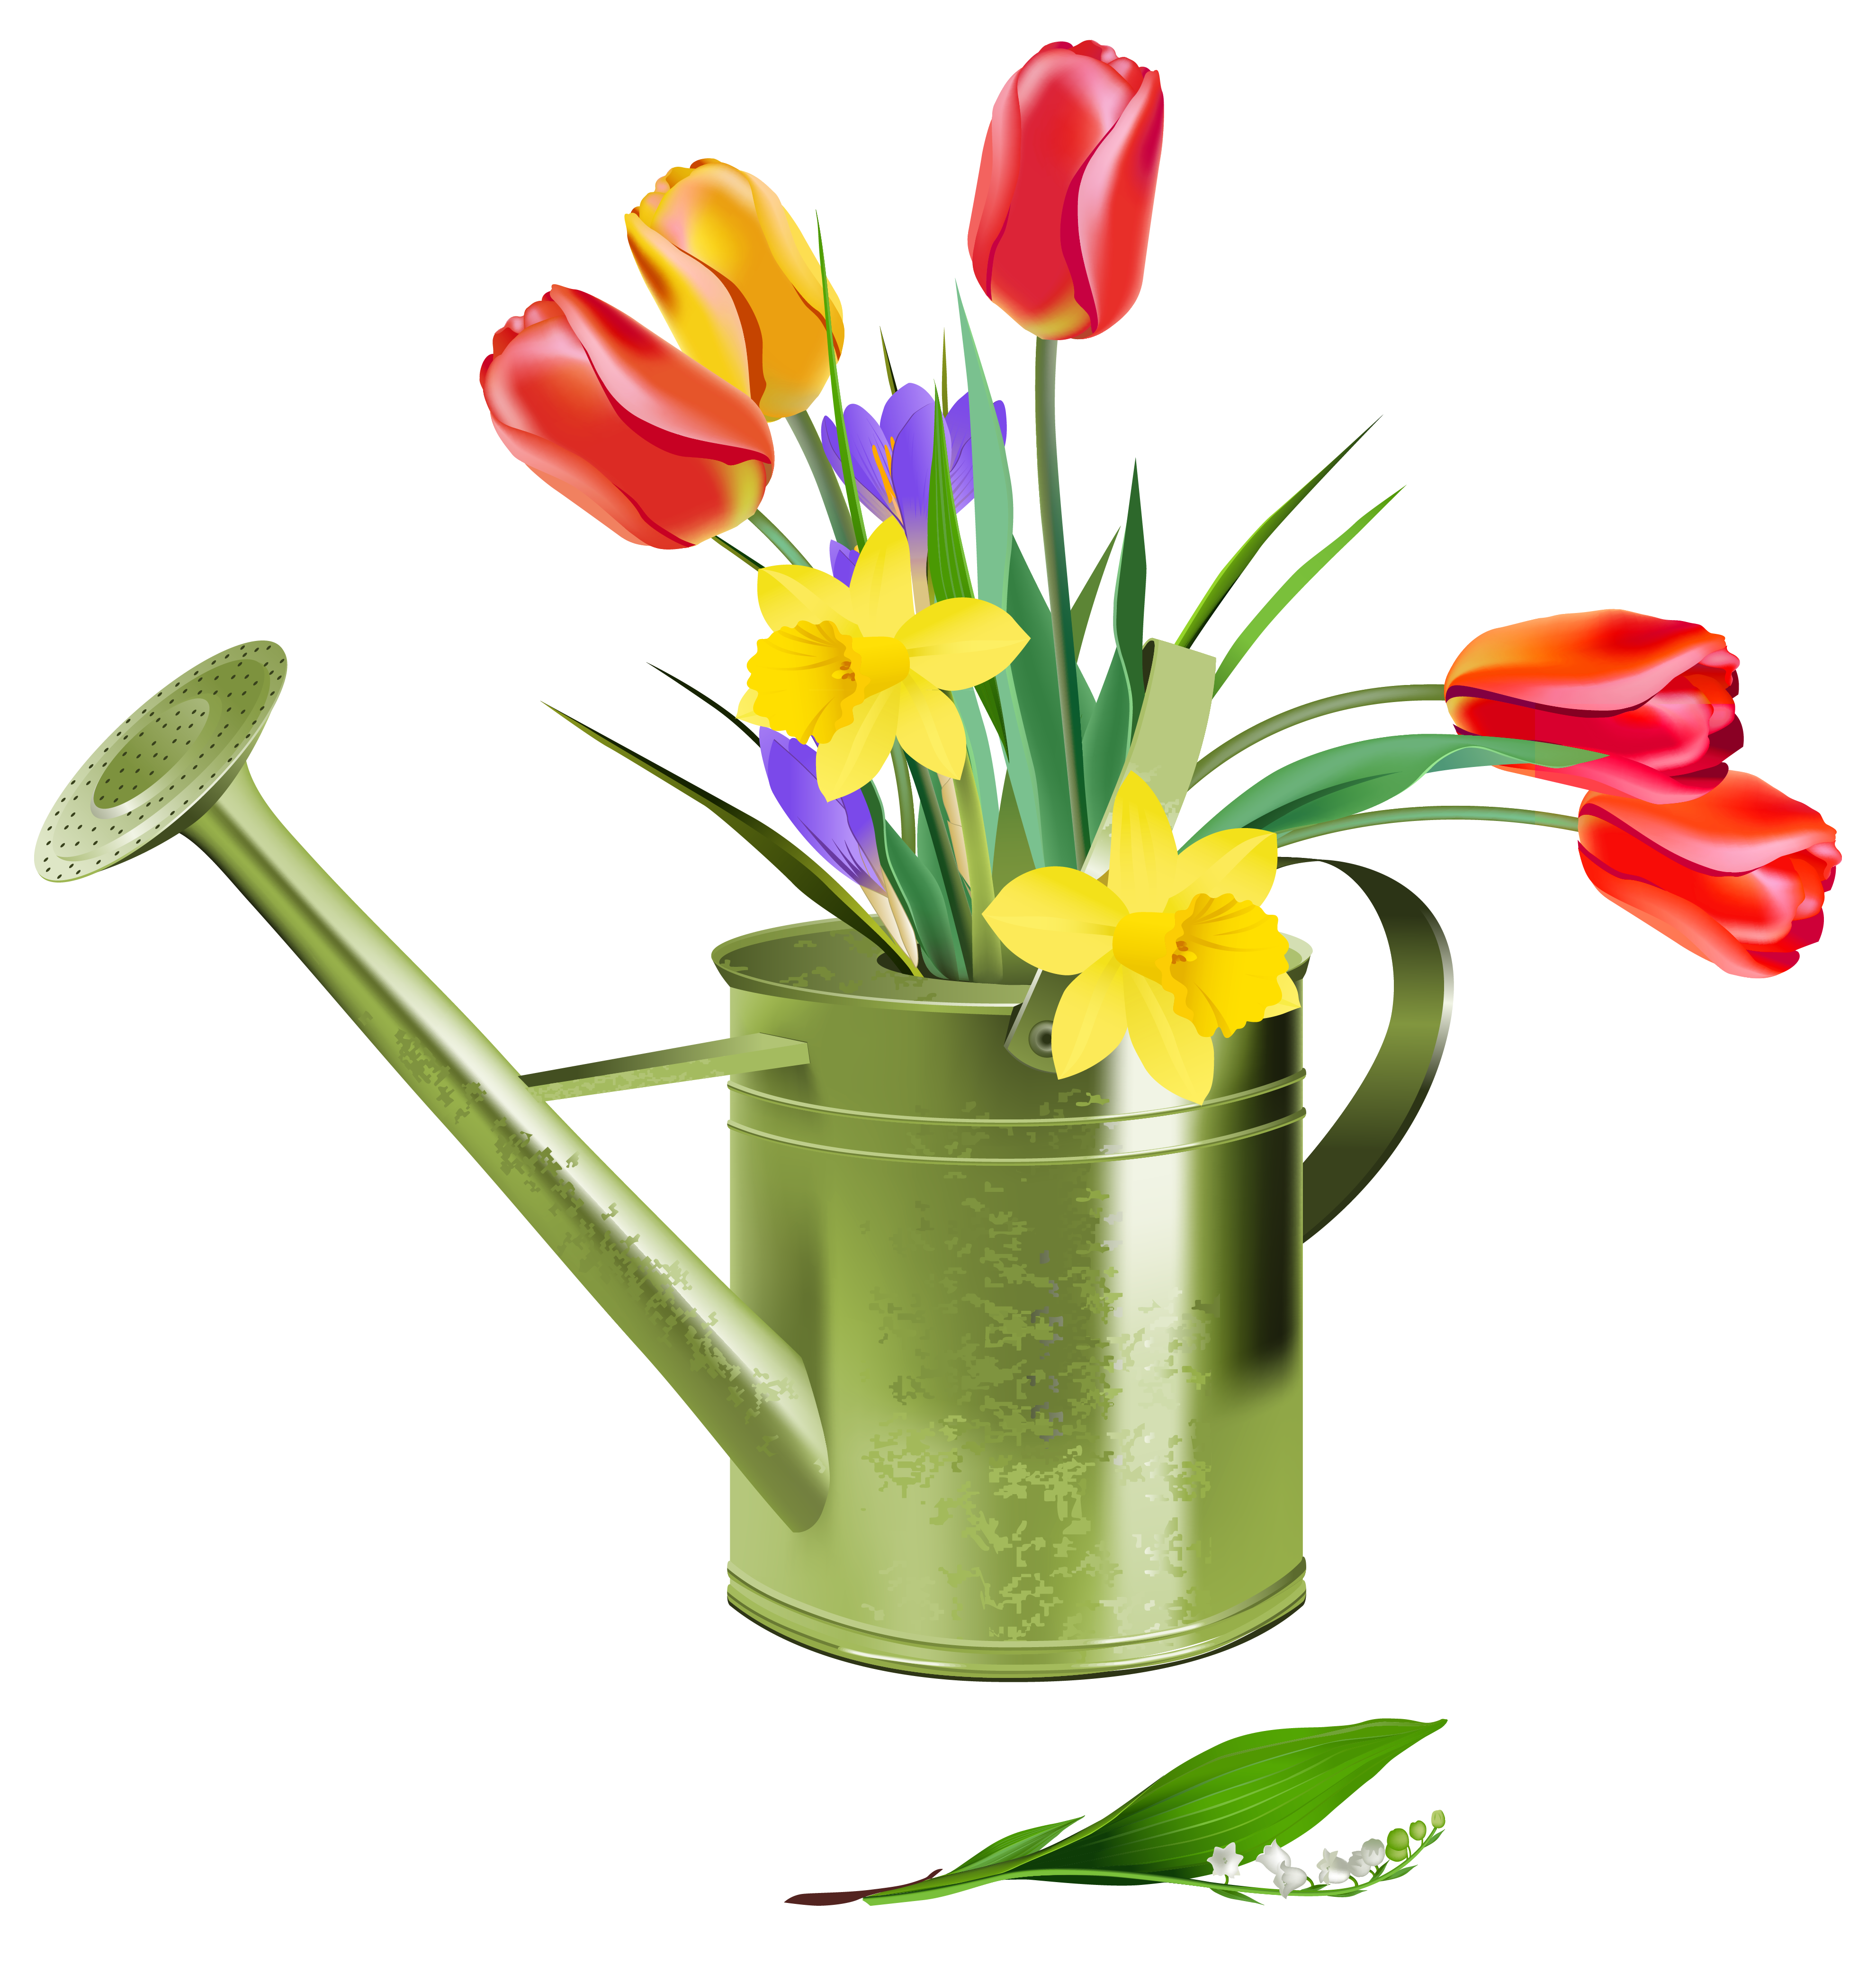 Green watering can with spring flowers clipart